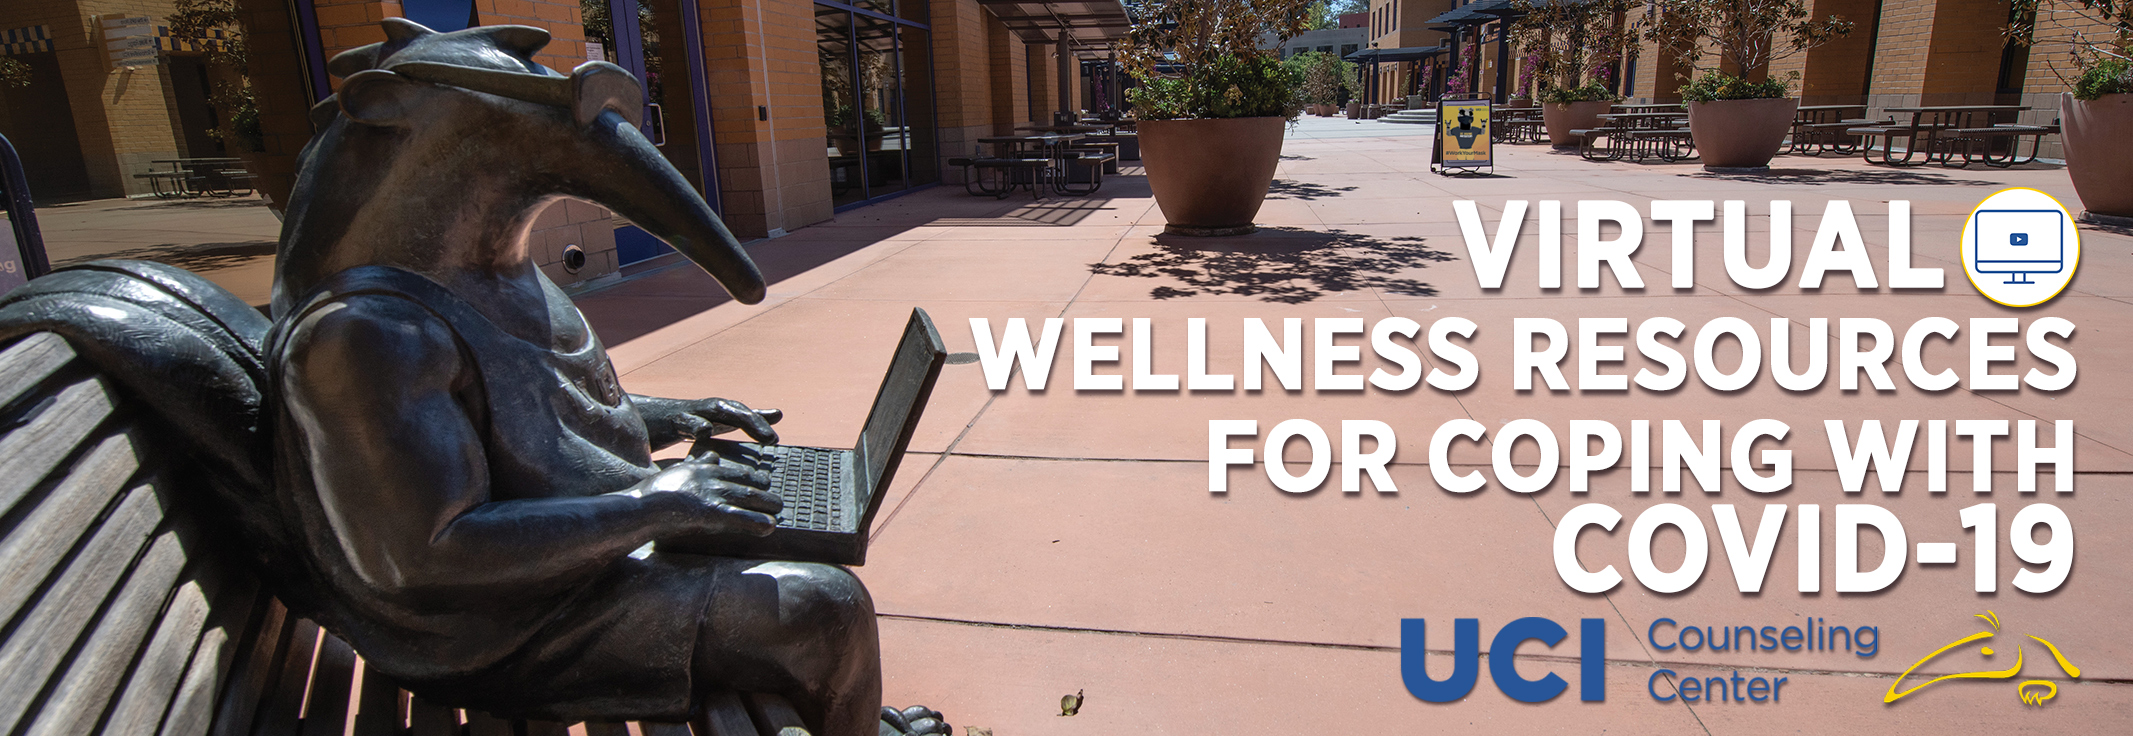 Virtual Wellness Resources for Coping with COVID-19 over image of Student Center terrace Peter statue with laptop